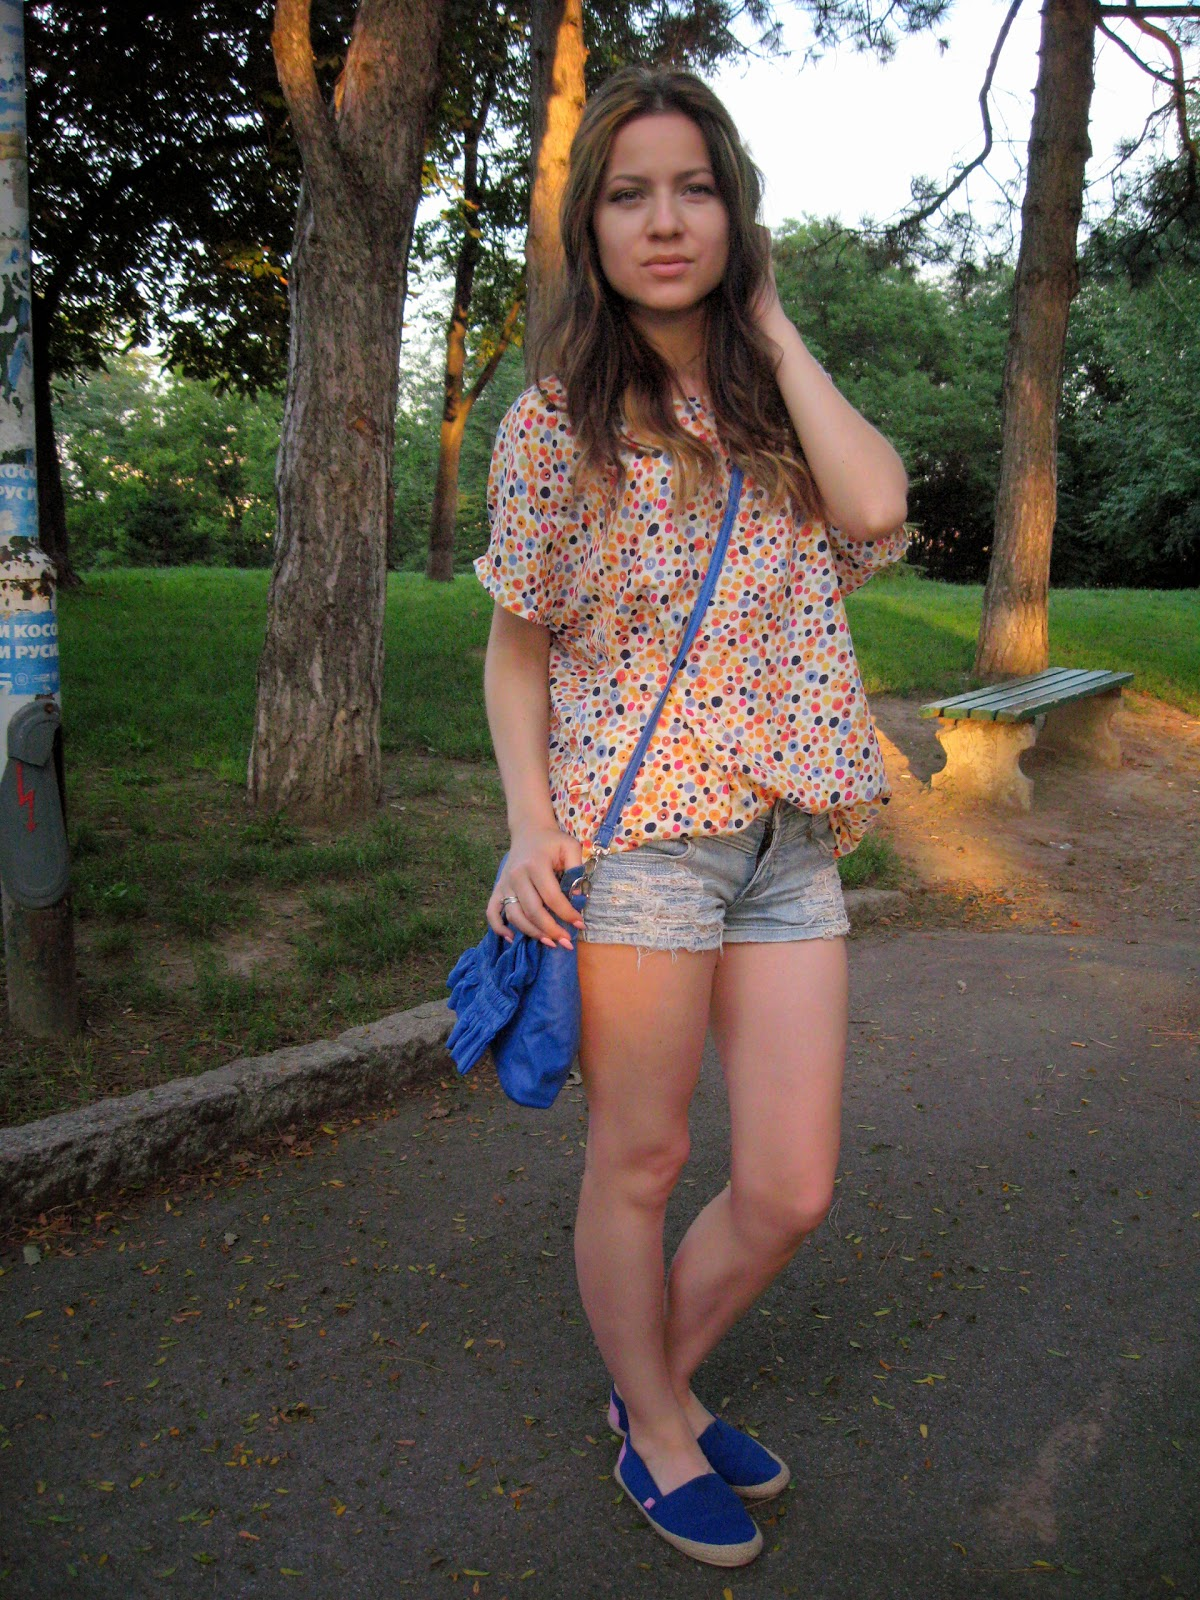 cobalt blue espadrilles, cobalt blue over the shoulder bag, floral top with crochet details on the back, blue denim shorts, hairstyle with highlights front layers, pale pink baby pink stiletto nails